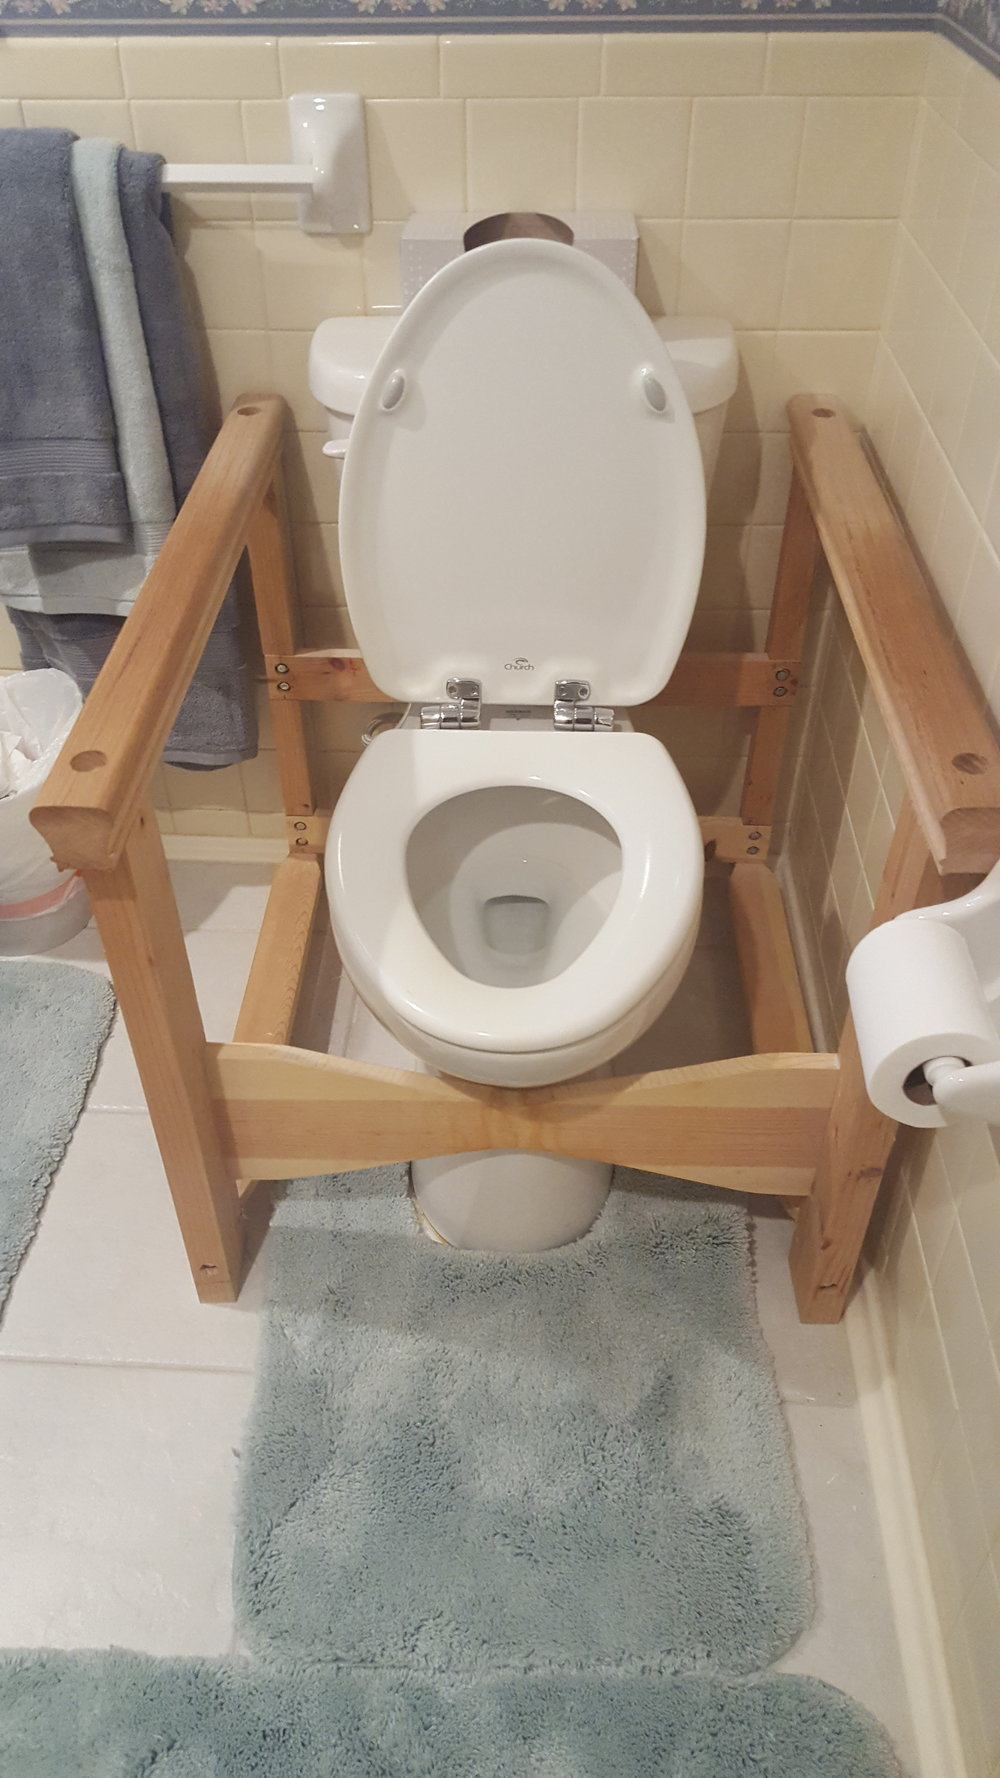 Before - The toilet was too low for my client to comfortably sit down and stand up. The wooden armrests were made by a family member.